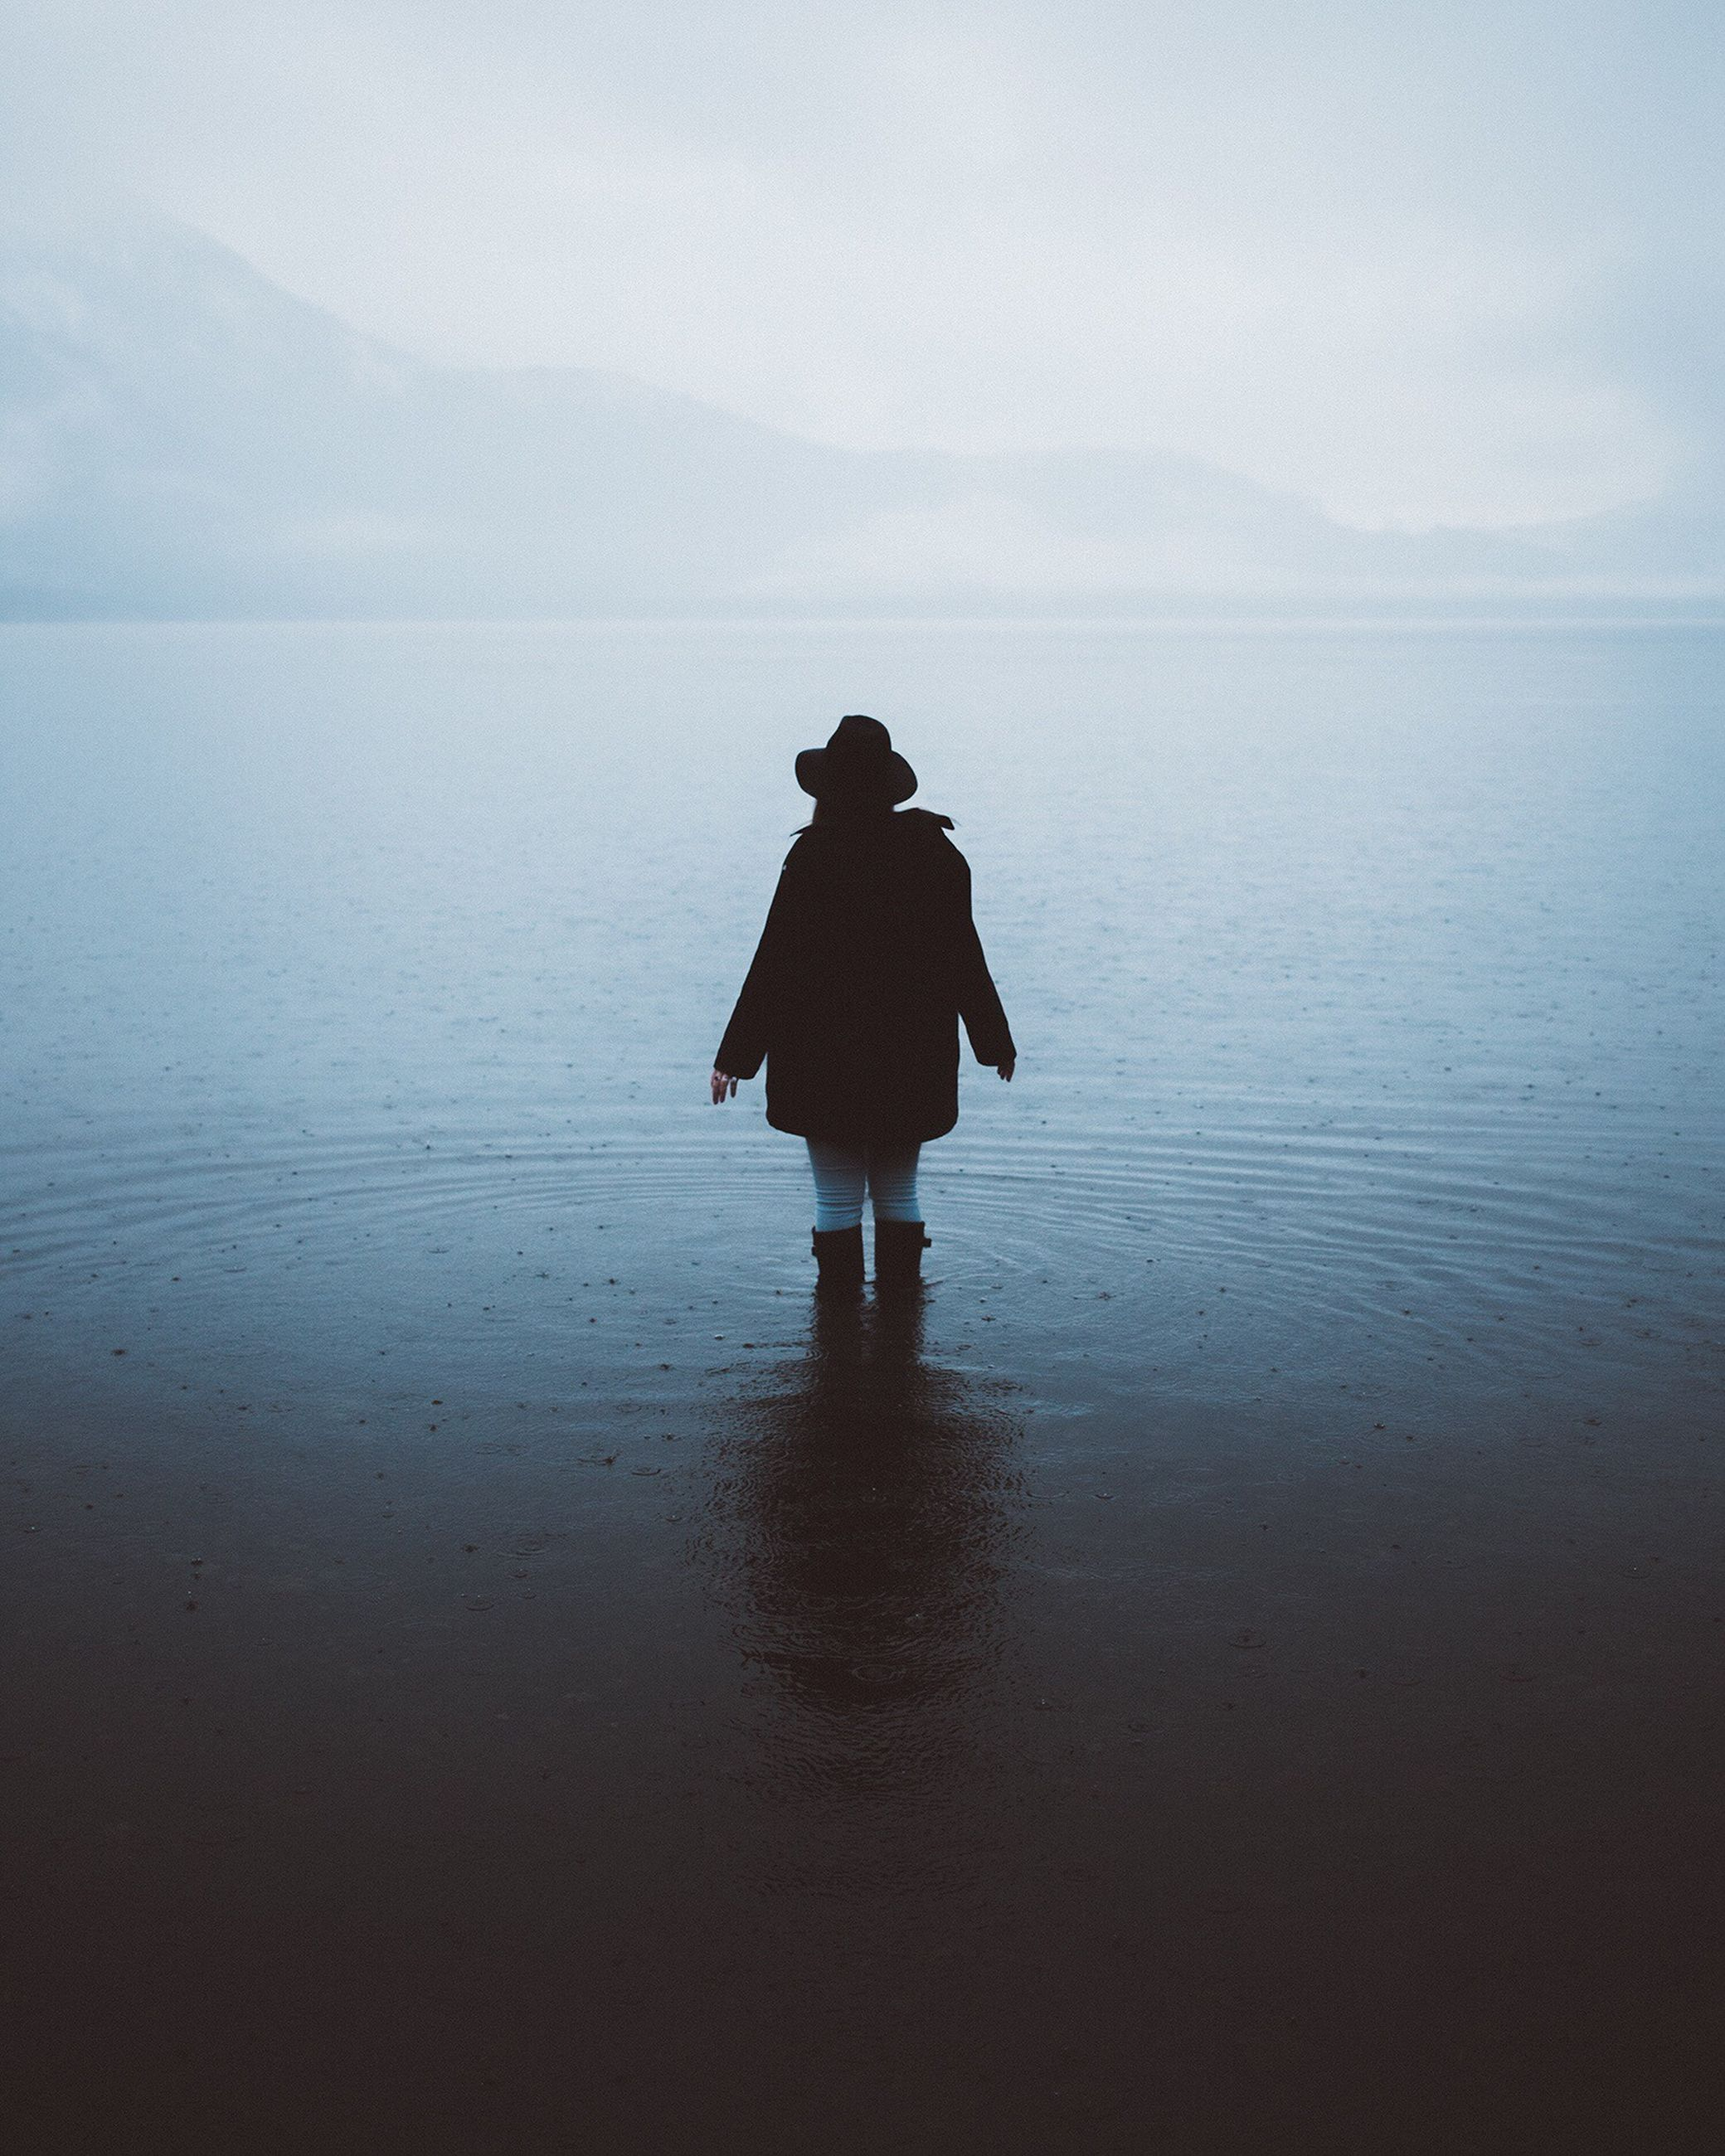 reflection, silhouette, one person, walking, one woman only, people, lake, adult, outdoors, real people, water, sky, nature, adults only, only women, day